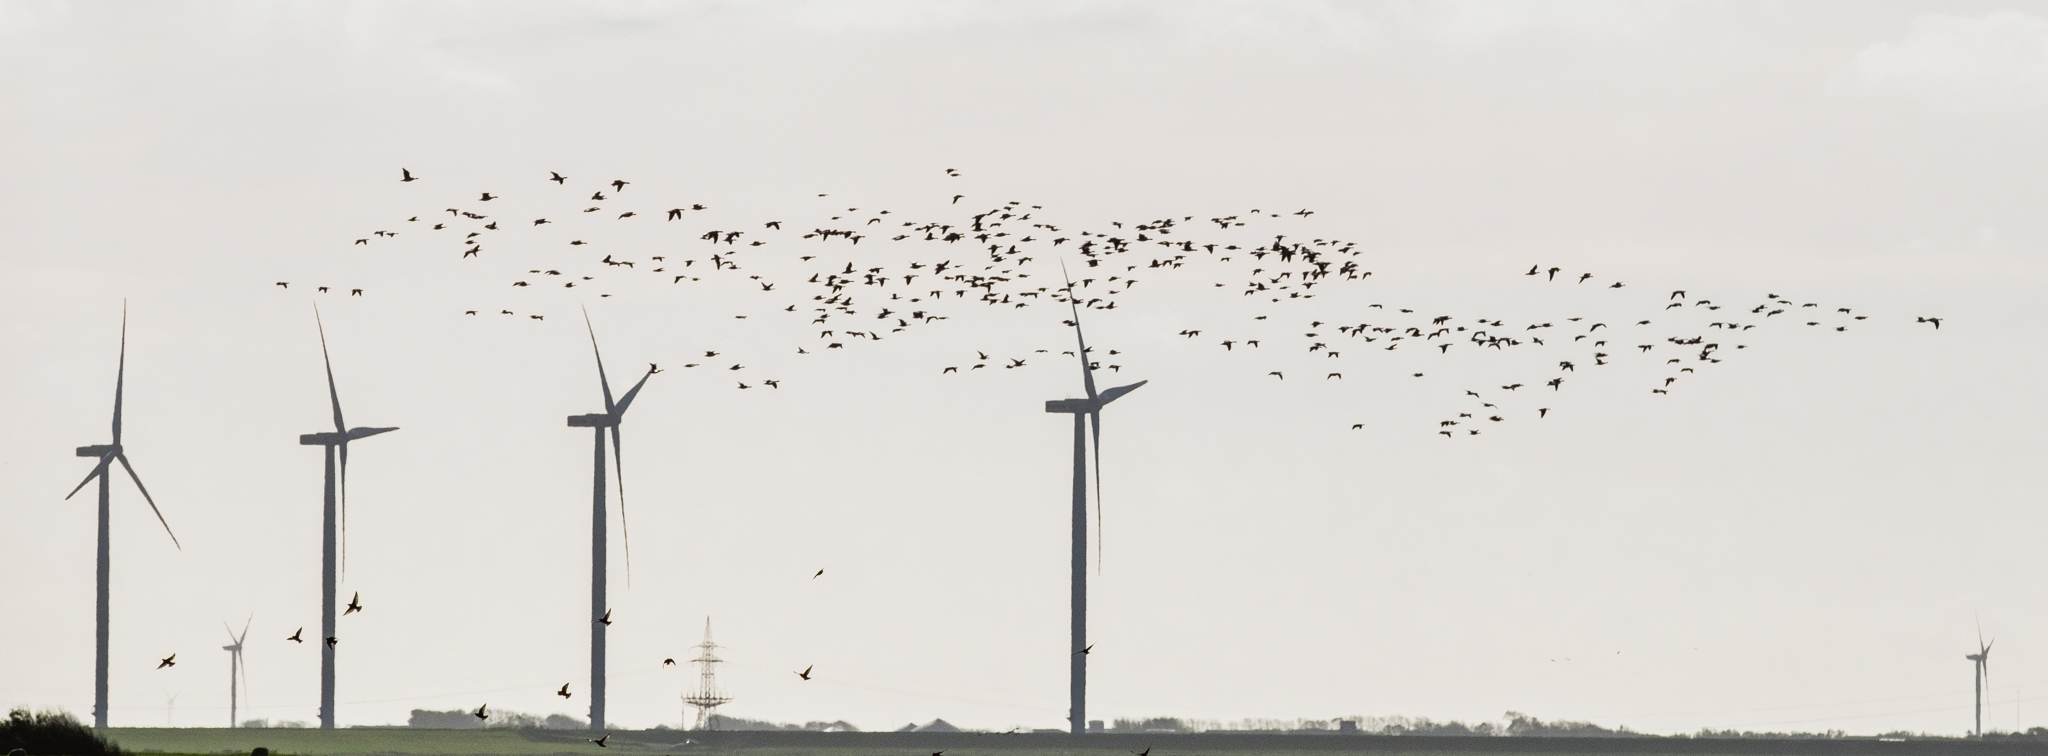 Birds and windmills